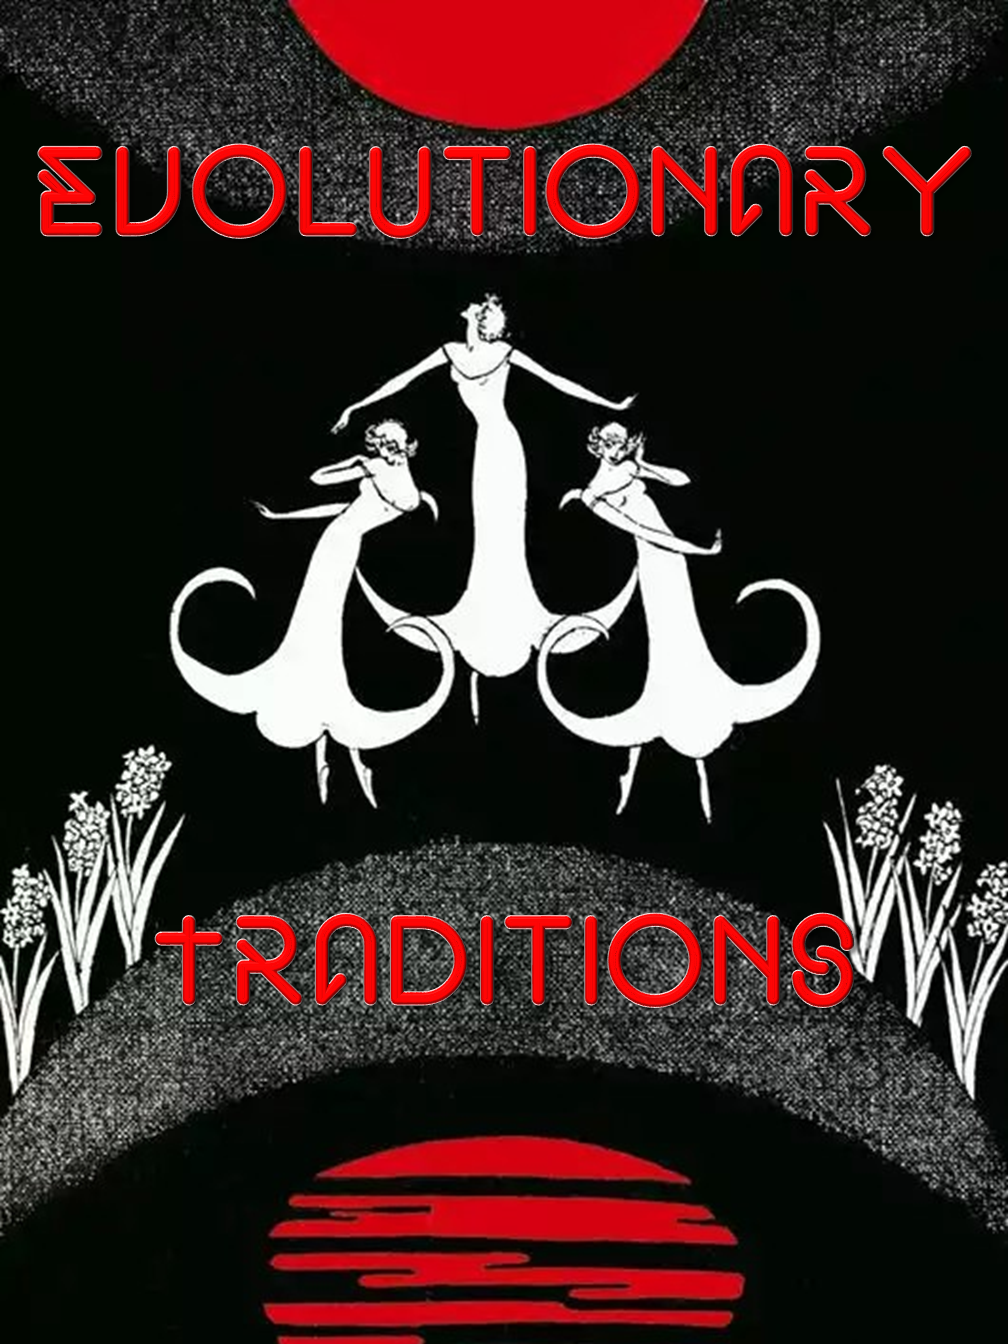 Evolutionary Traditions